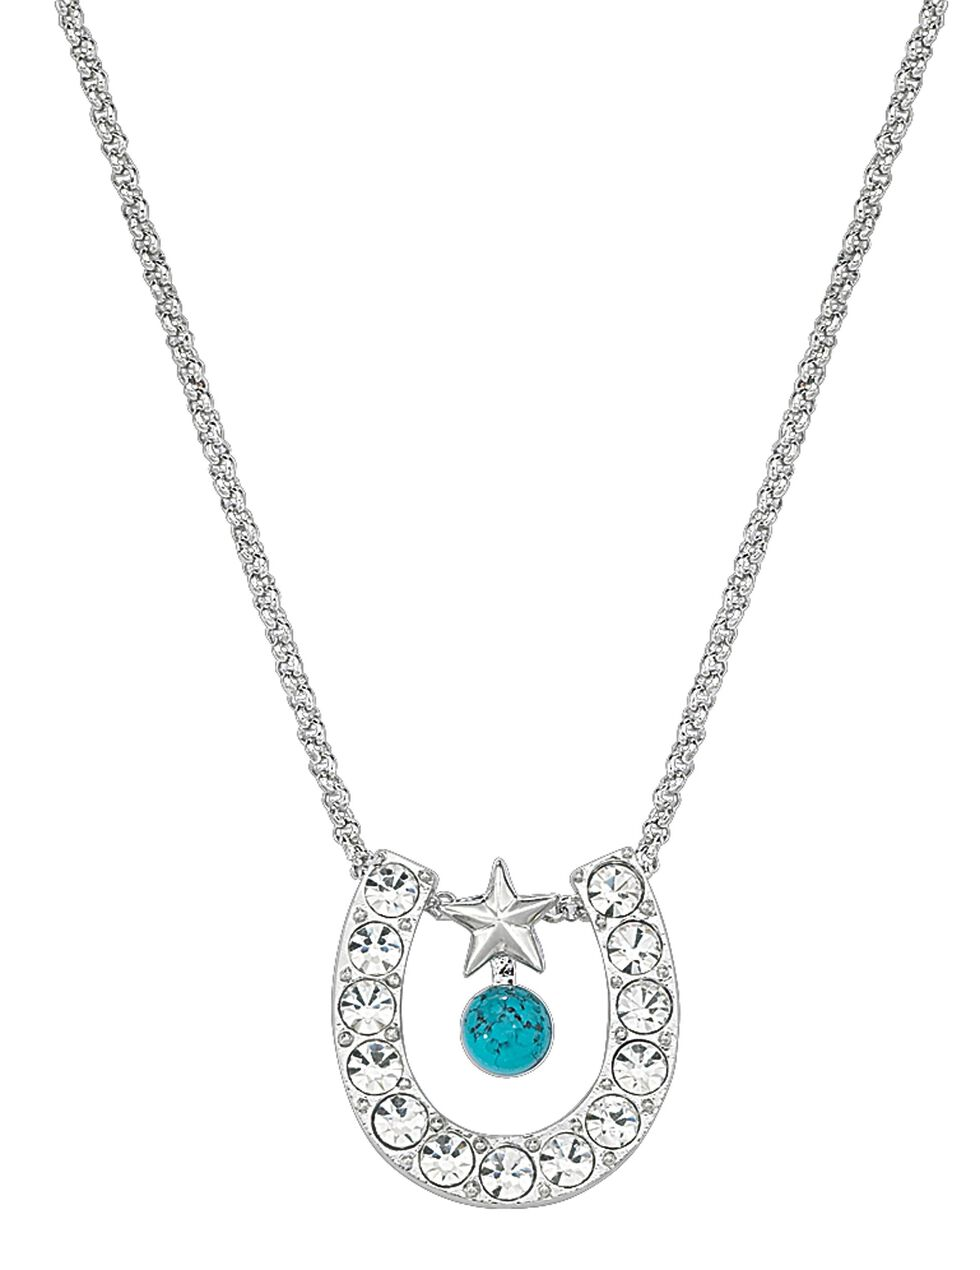 Montana Silversmiths Rhinestone Horseshoe with Turquoise Bead Necklace, Multi, hi-res